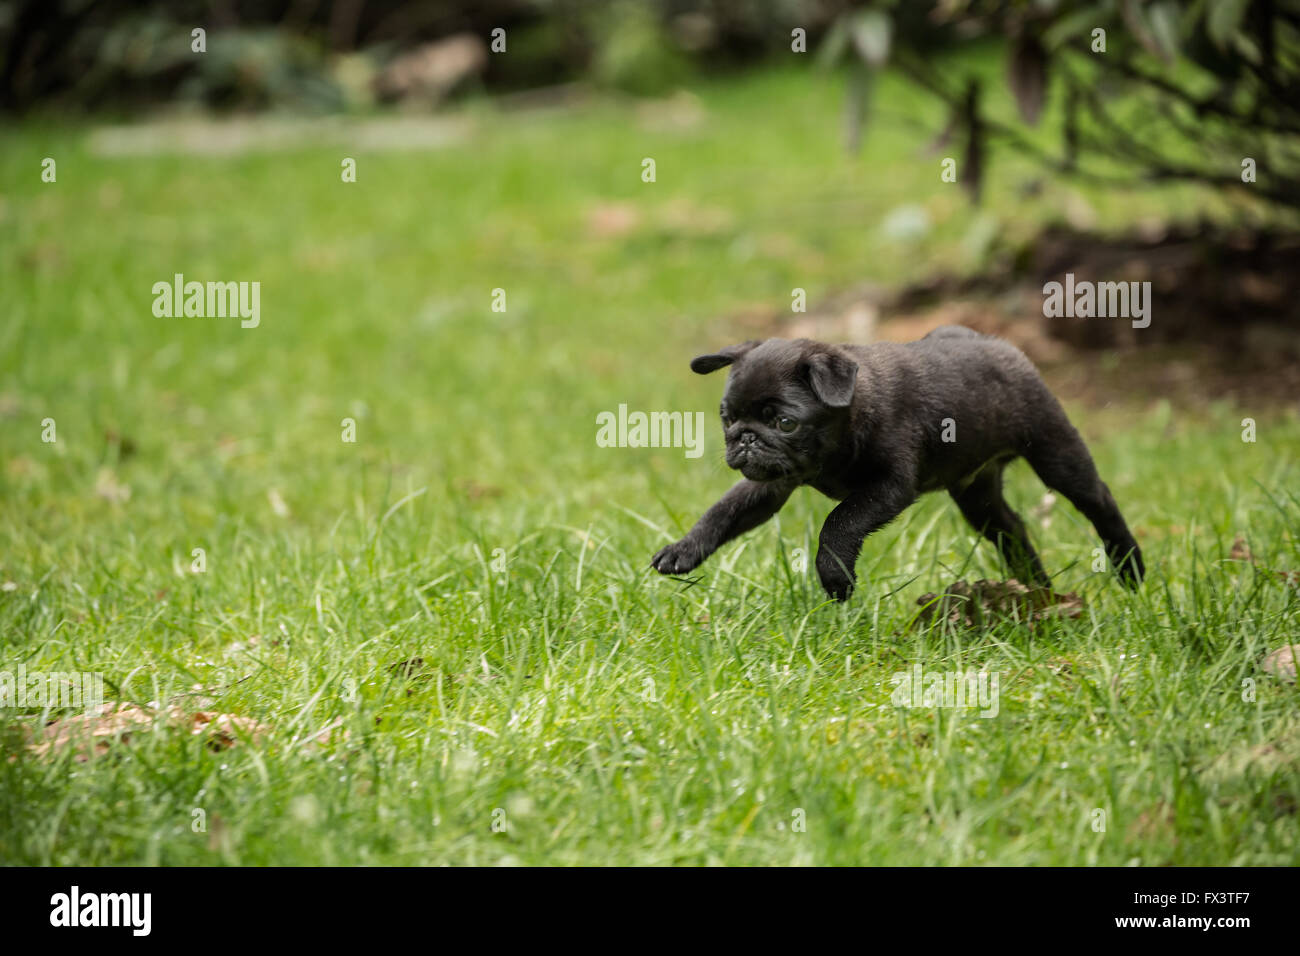 Fitzgerald, a 10 week old black Pug puppy playfully running and jumping into the air in the backyard lawn - Stock Image